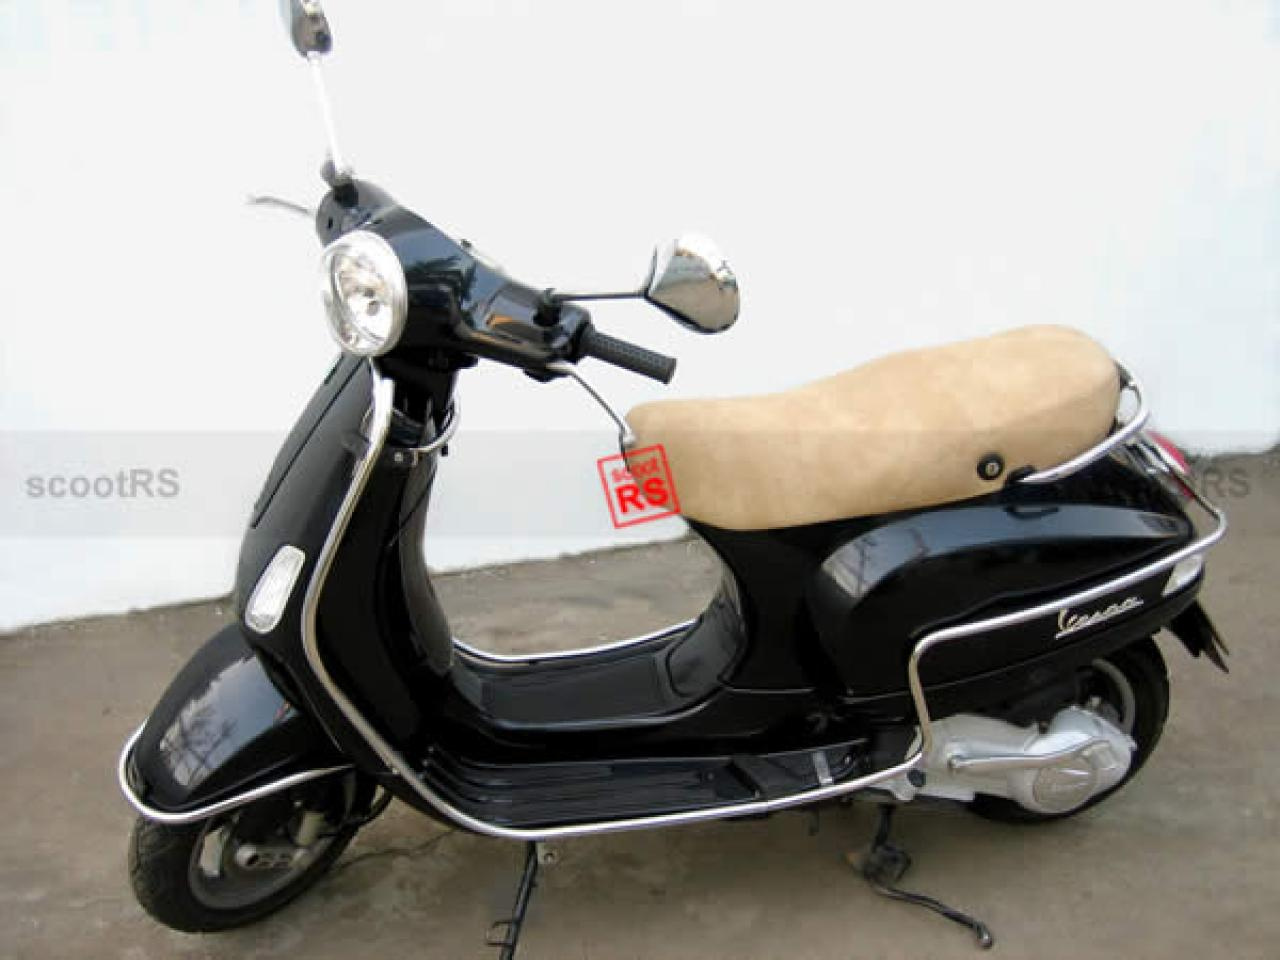 Moto vespa 150 photo - 10